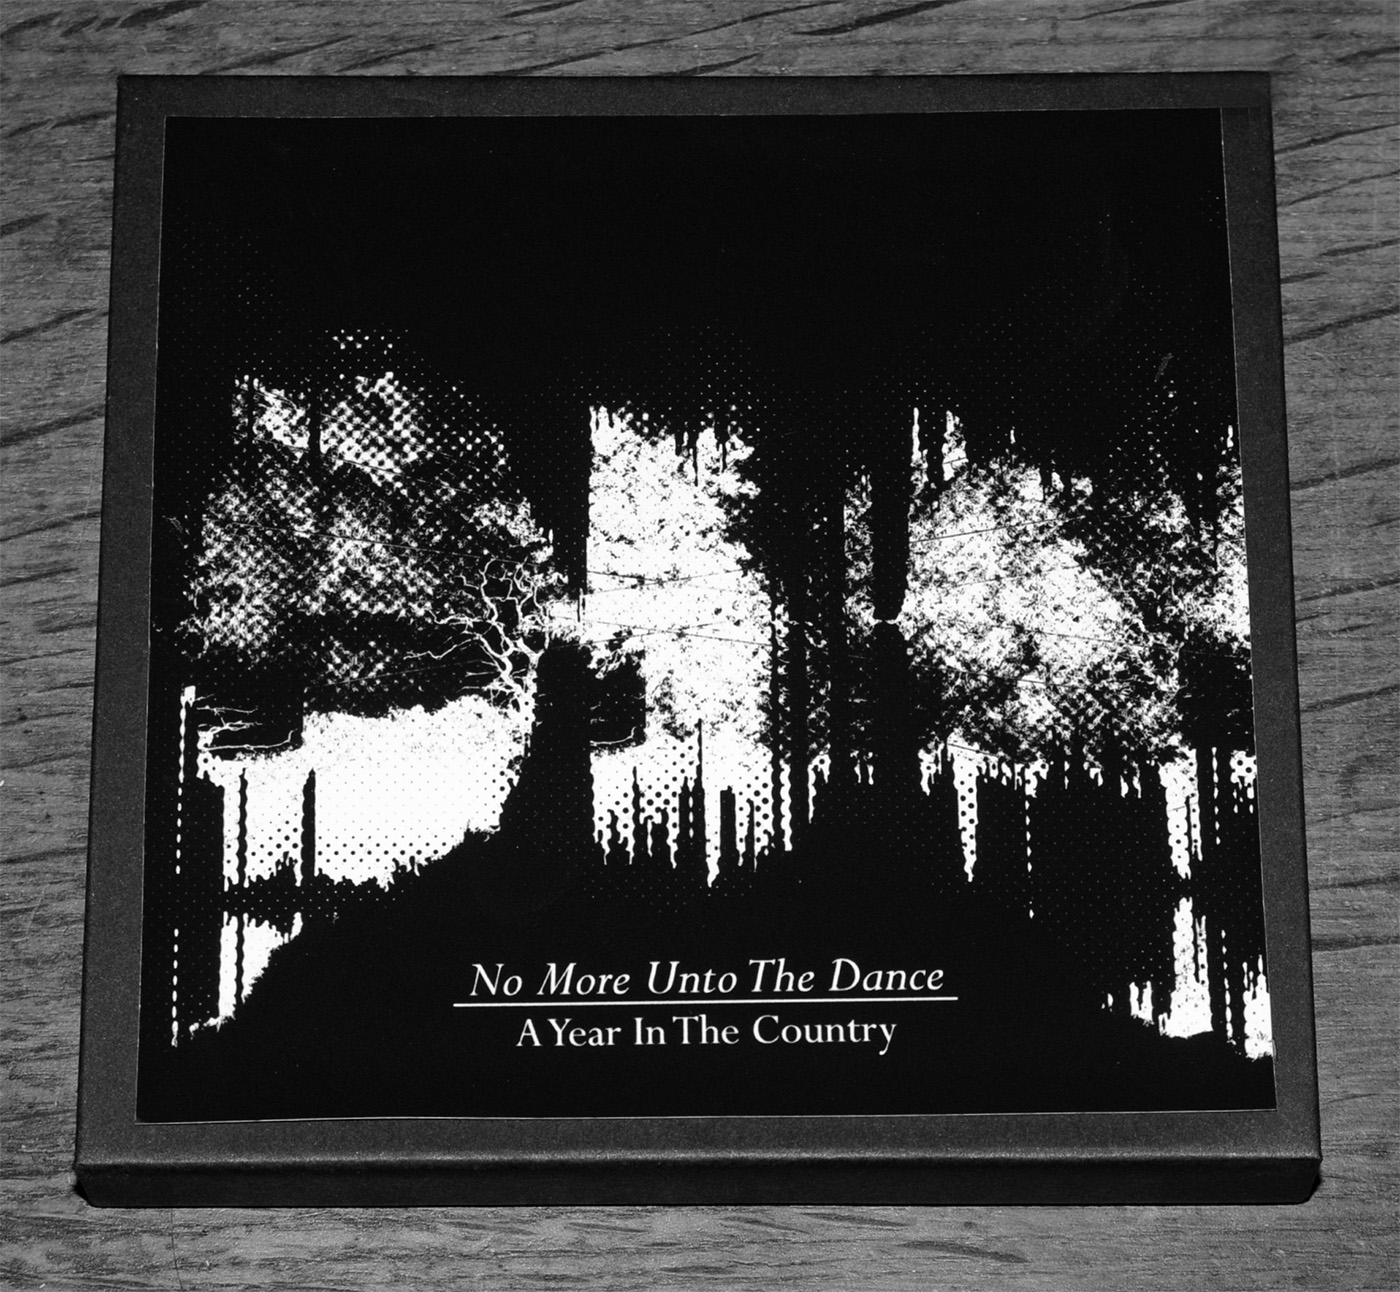 No More Unto The Dance-Night Edition front-A Year In The Country copy